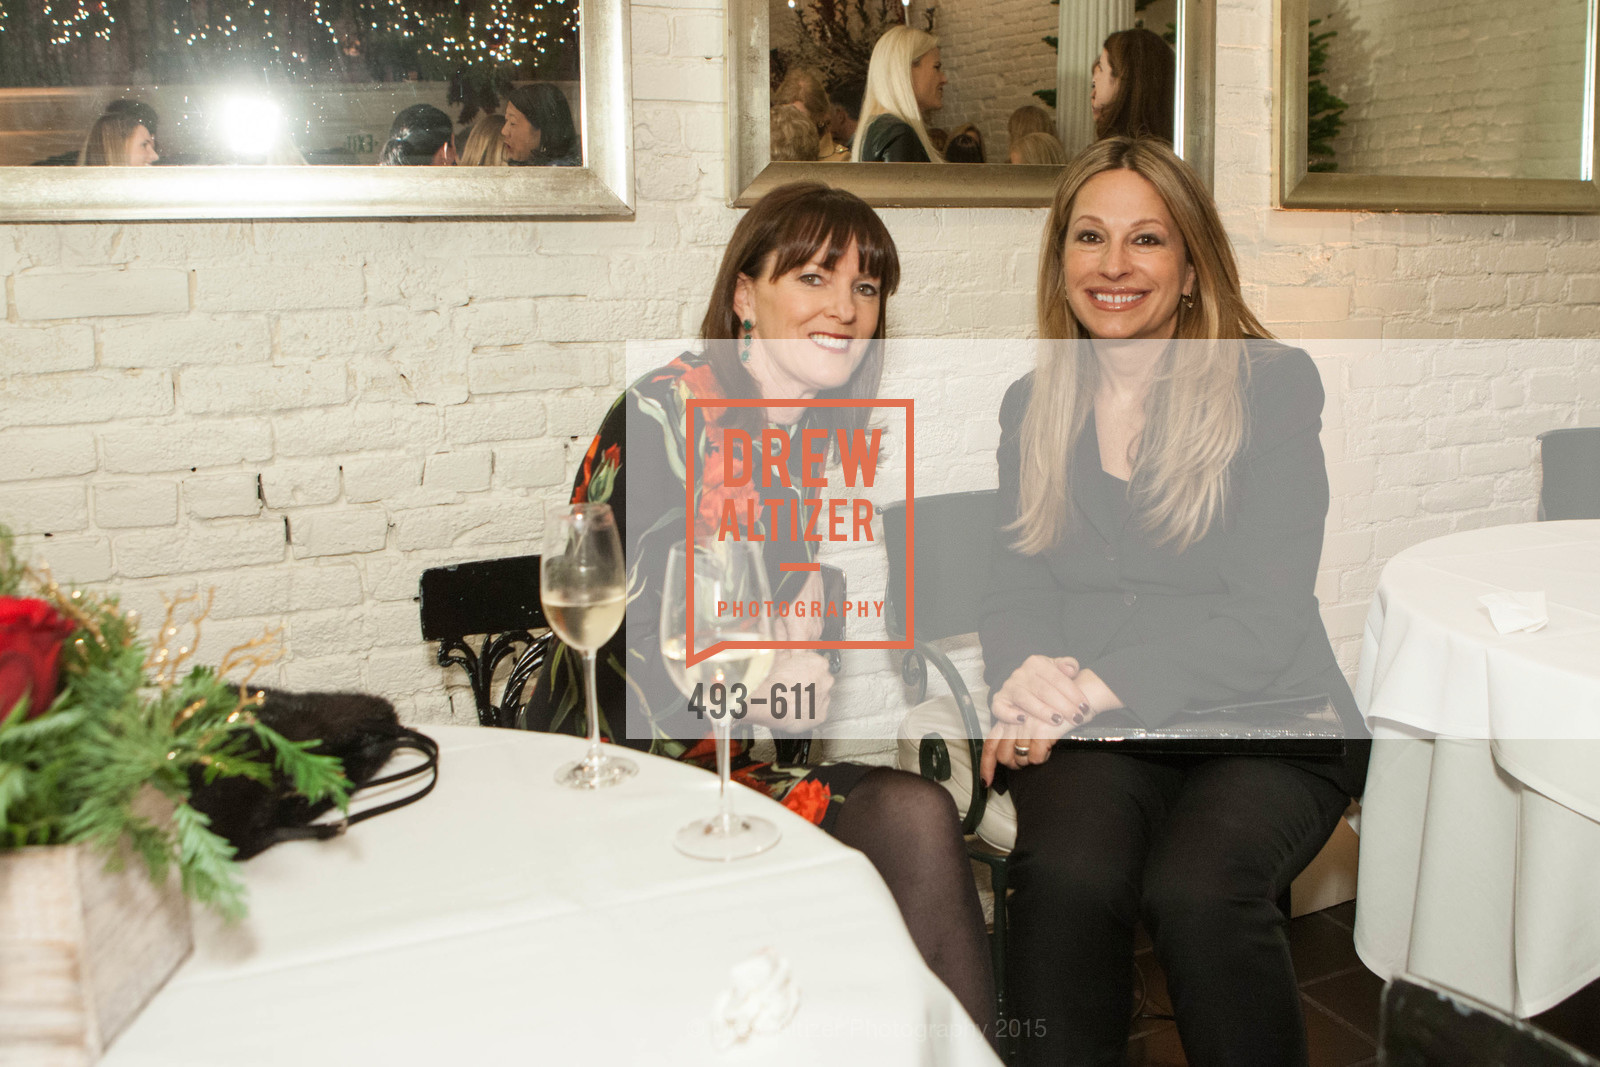 Allison Speer, Carolyne Zinko, San Francisco Ballet Auxiliary's Gala Launch party hosted by La Perla., VILLA TAVERA. 27 HOTALING PLACE, December 1st, 2015,Drew Altizer, Drew Altizer Photography, full-service event agency, private events, San Francisco photographer, photographer California